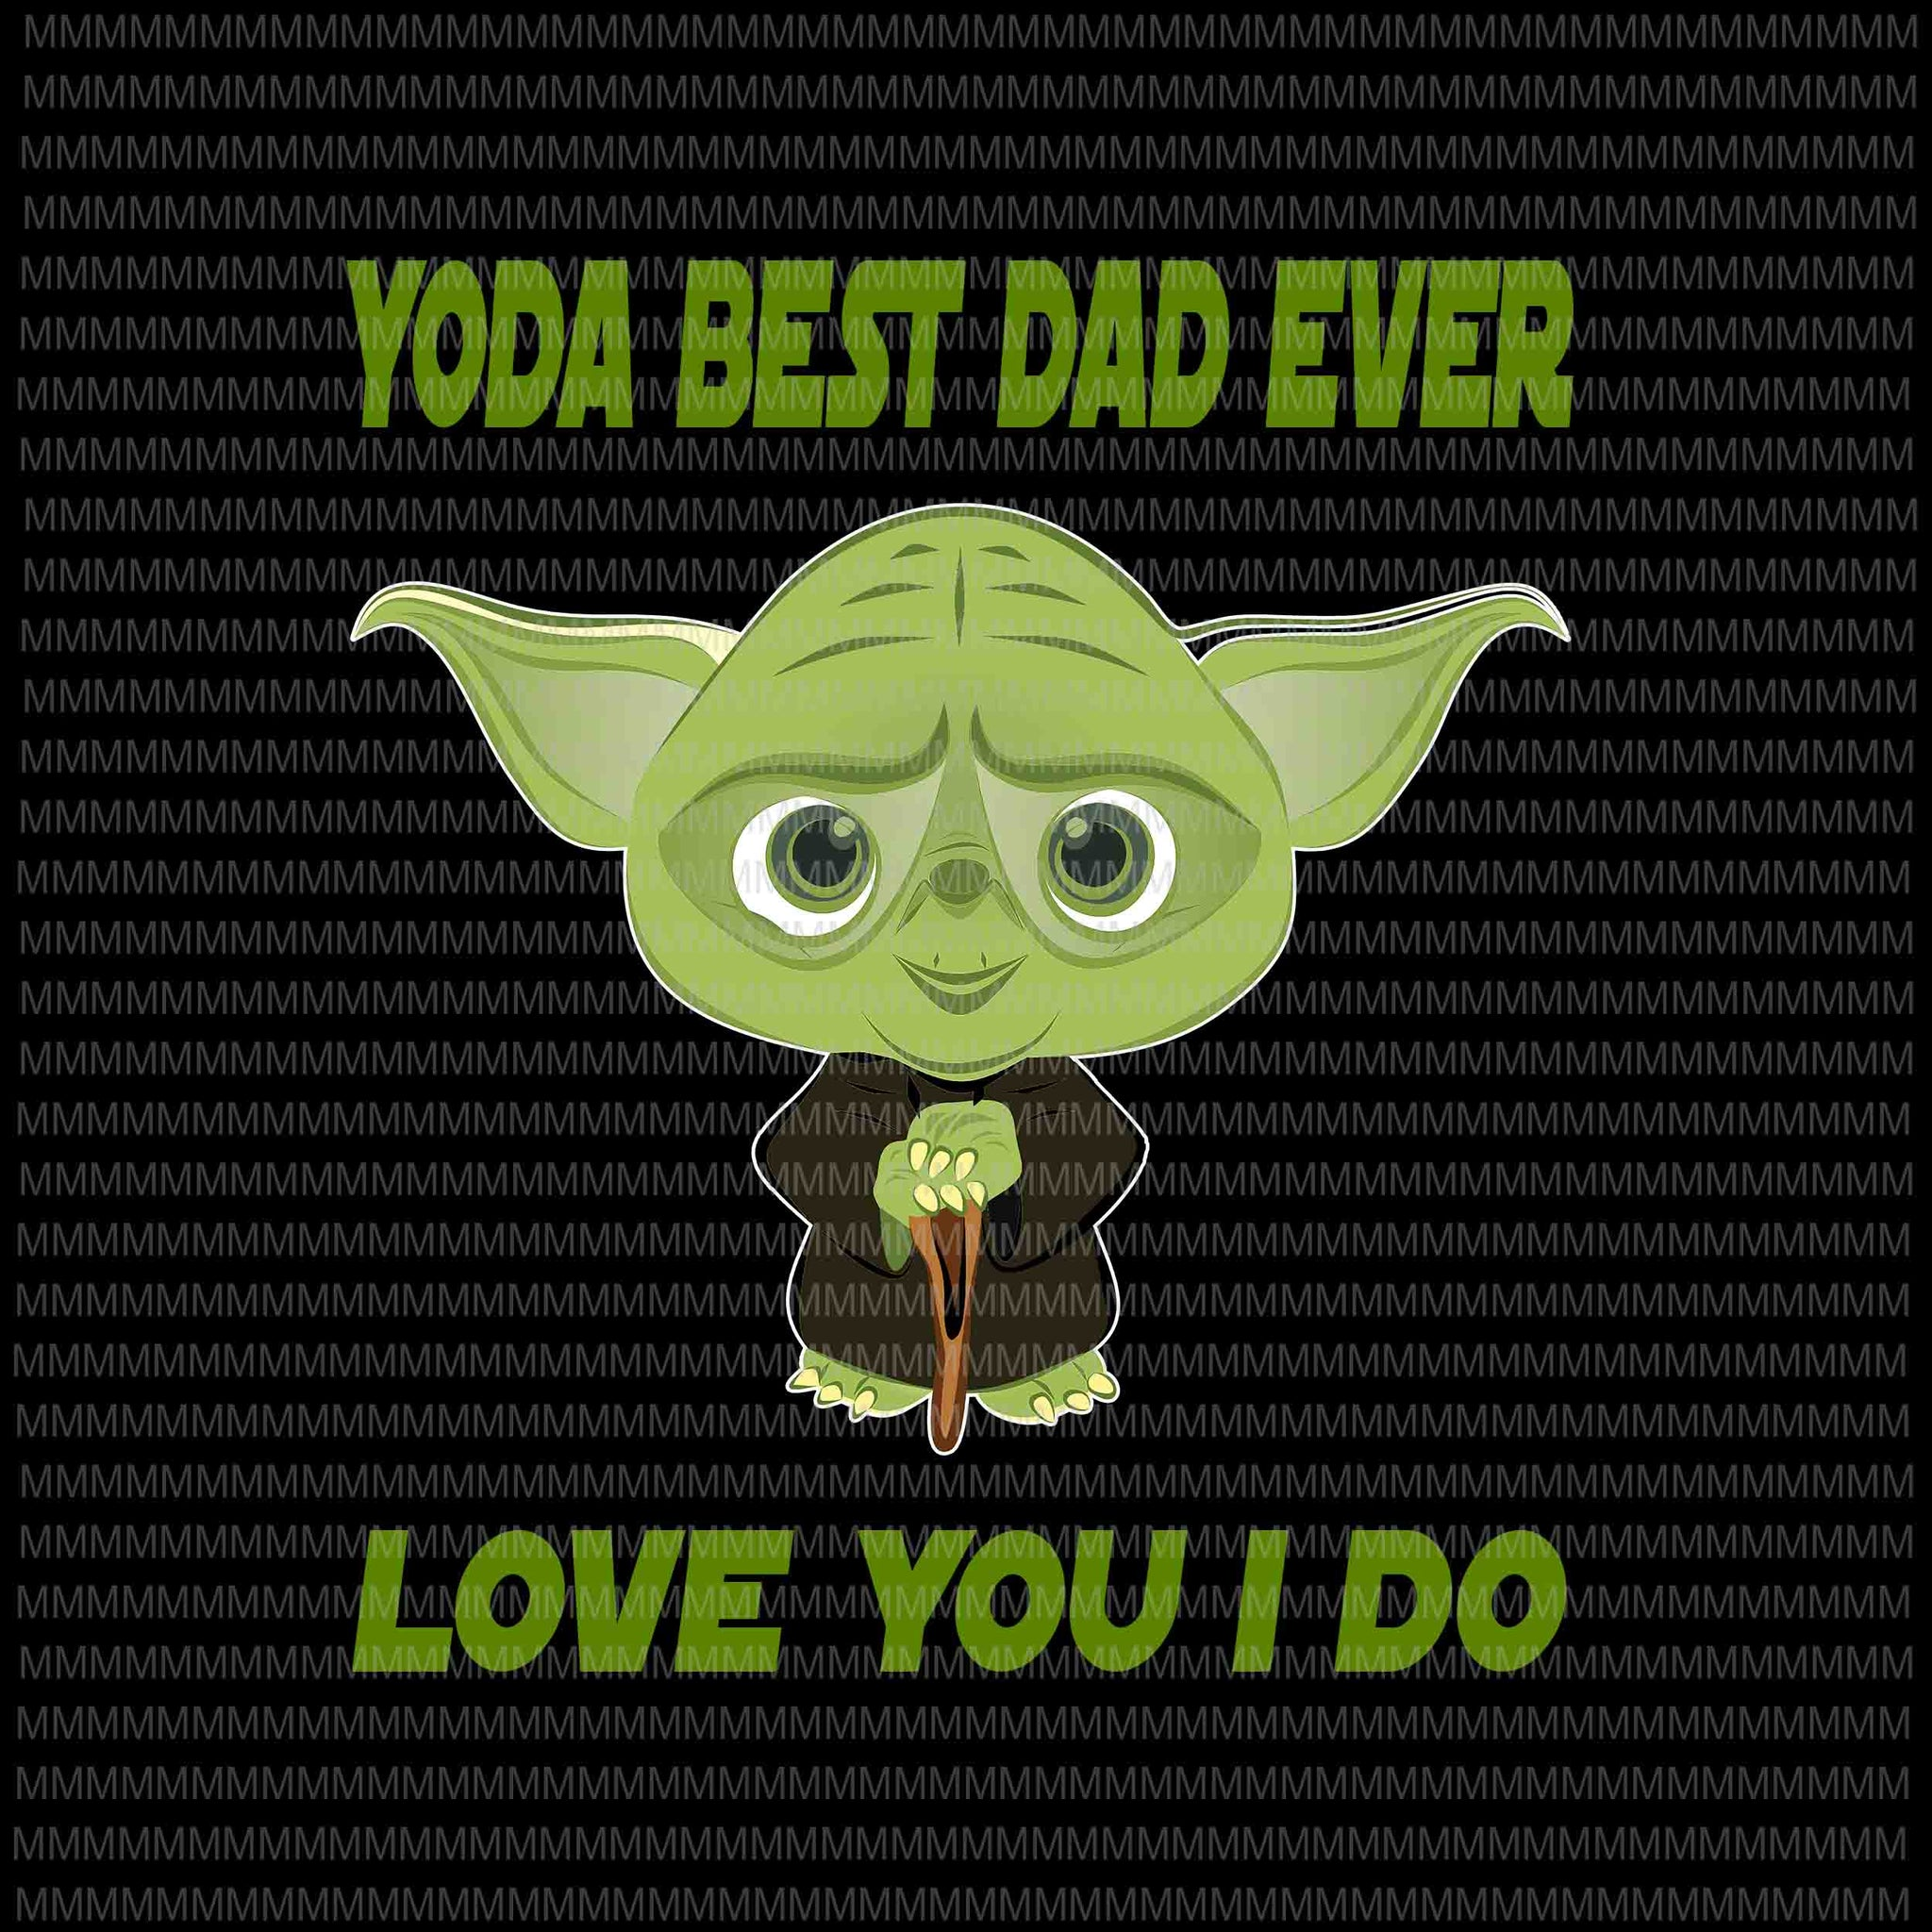 Yoda Best Dad Ever, Love You I Do png, Father's day vector, Yoda Father's day vector, Father's day png, Father's day design, jpg  t shirt design for purchase